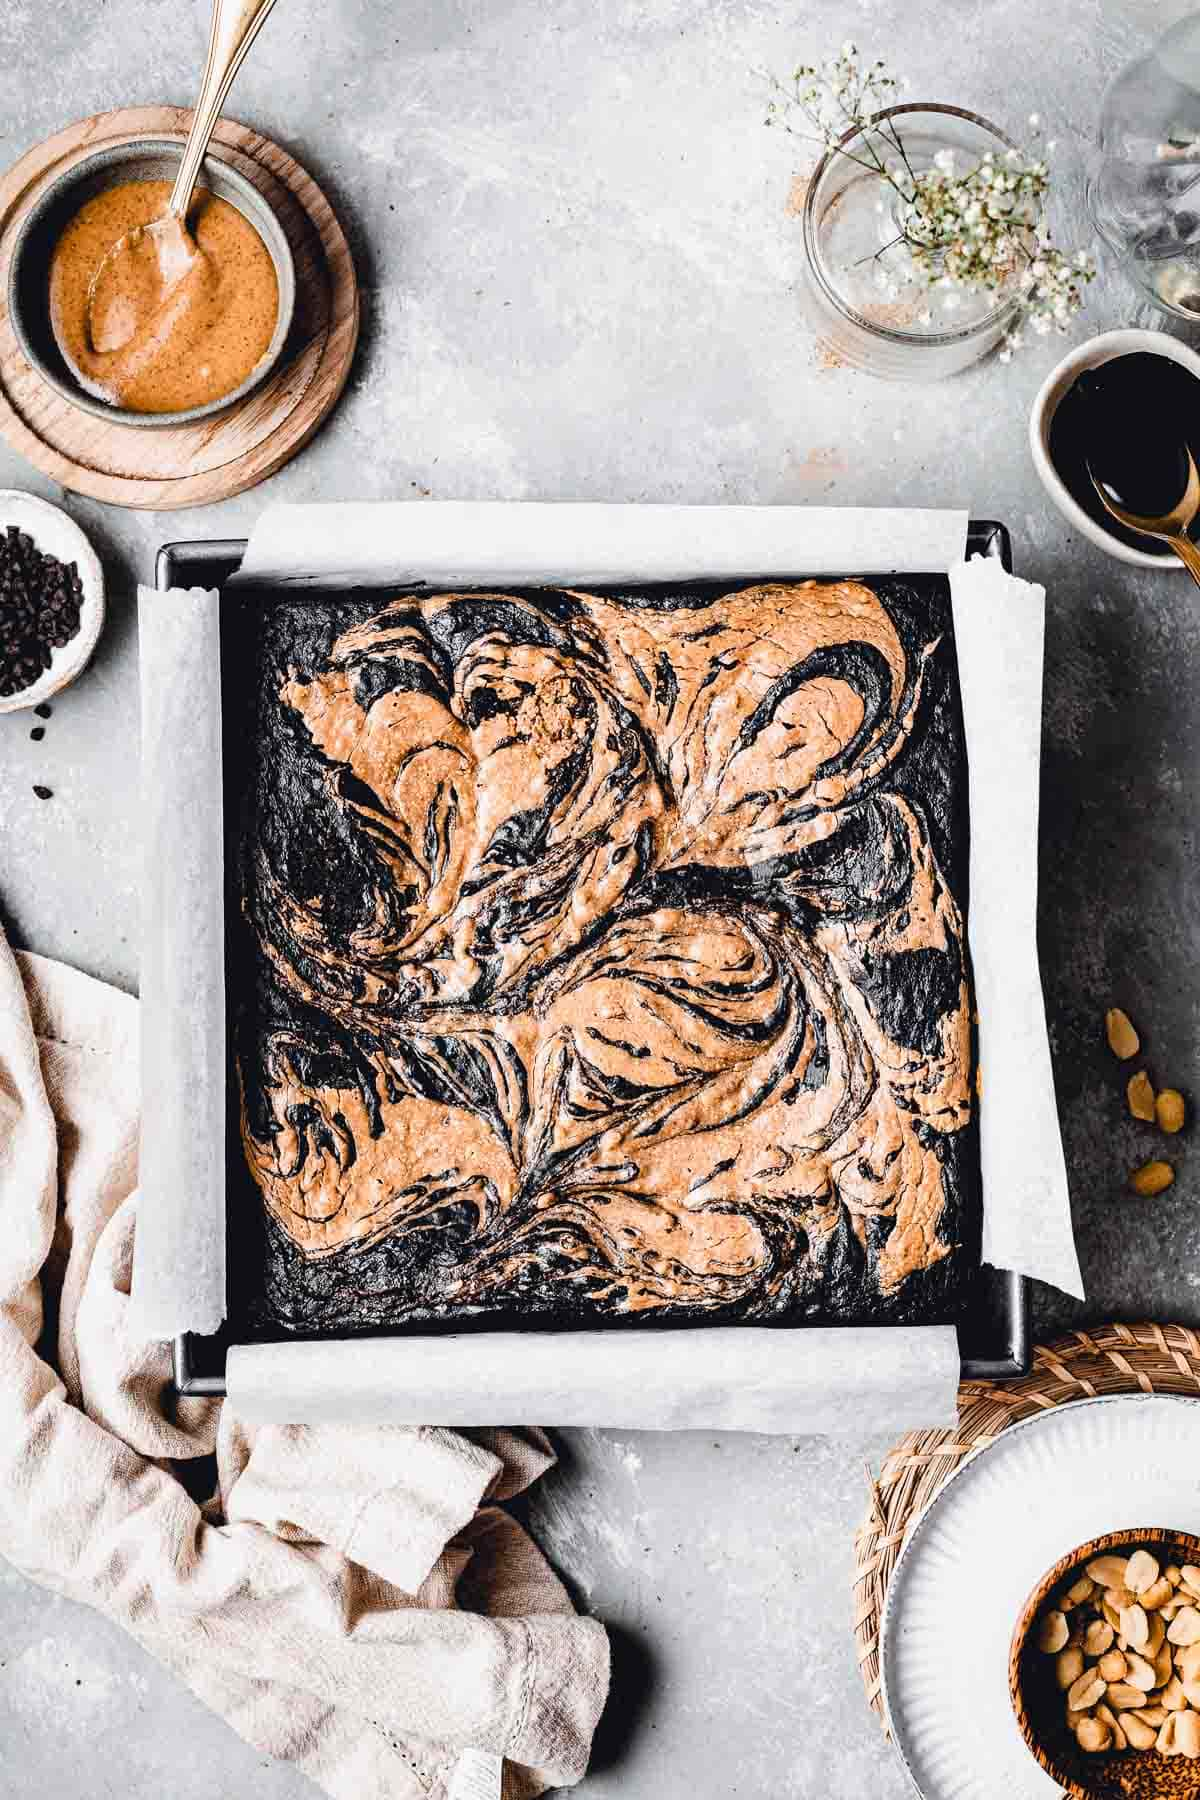 Swirled vegan peanut butter brownie in a square shaped baking tin shown from the top.